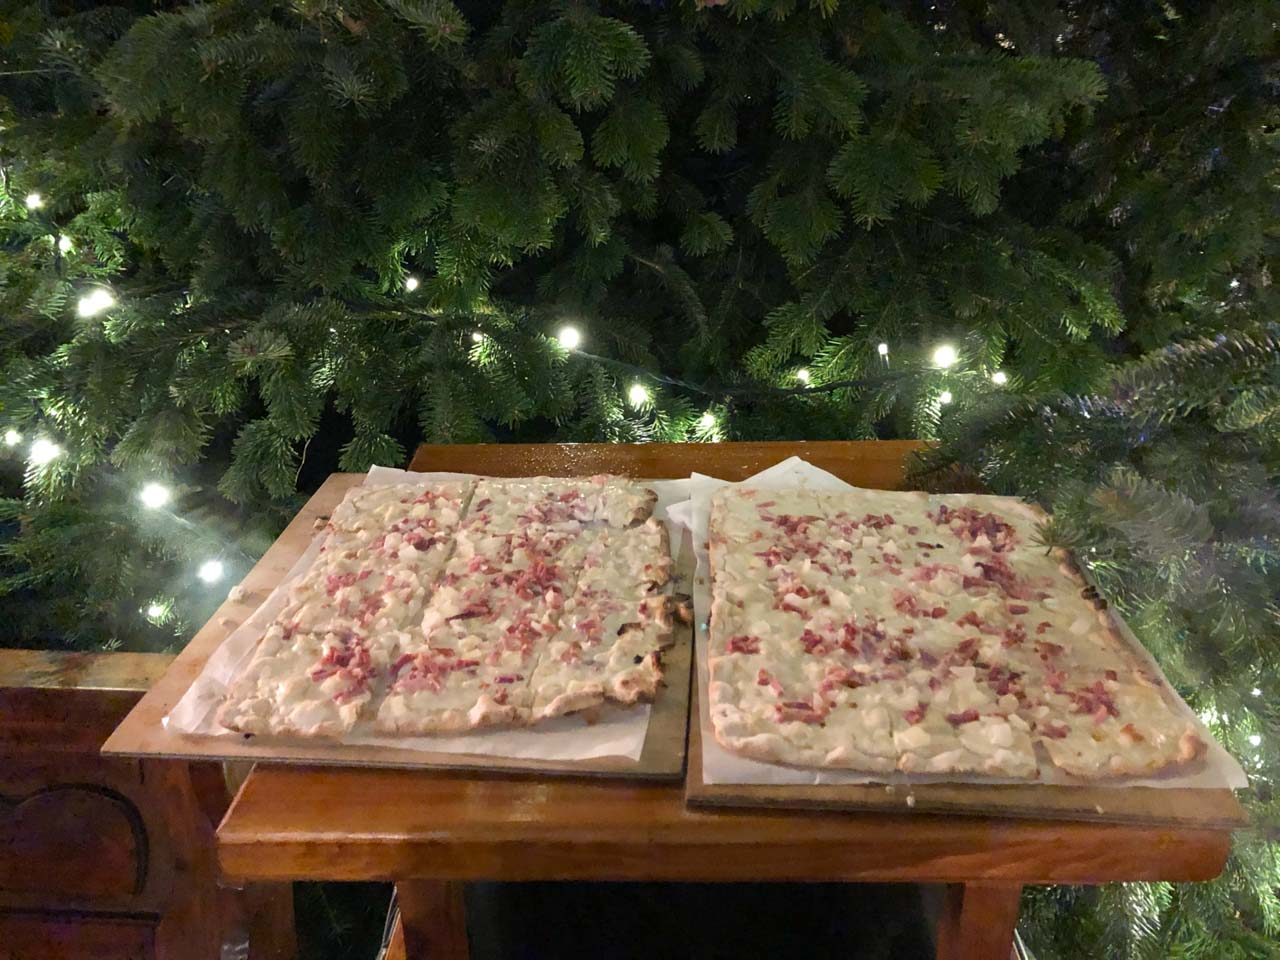 Flammkuchen in front of a Christmas tree at a Christmas market in Hamburg